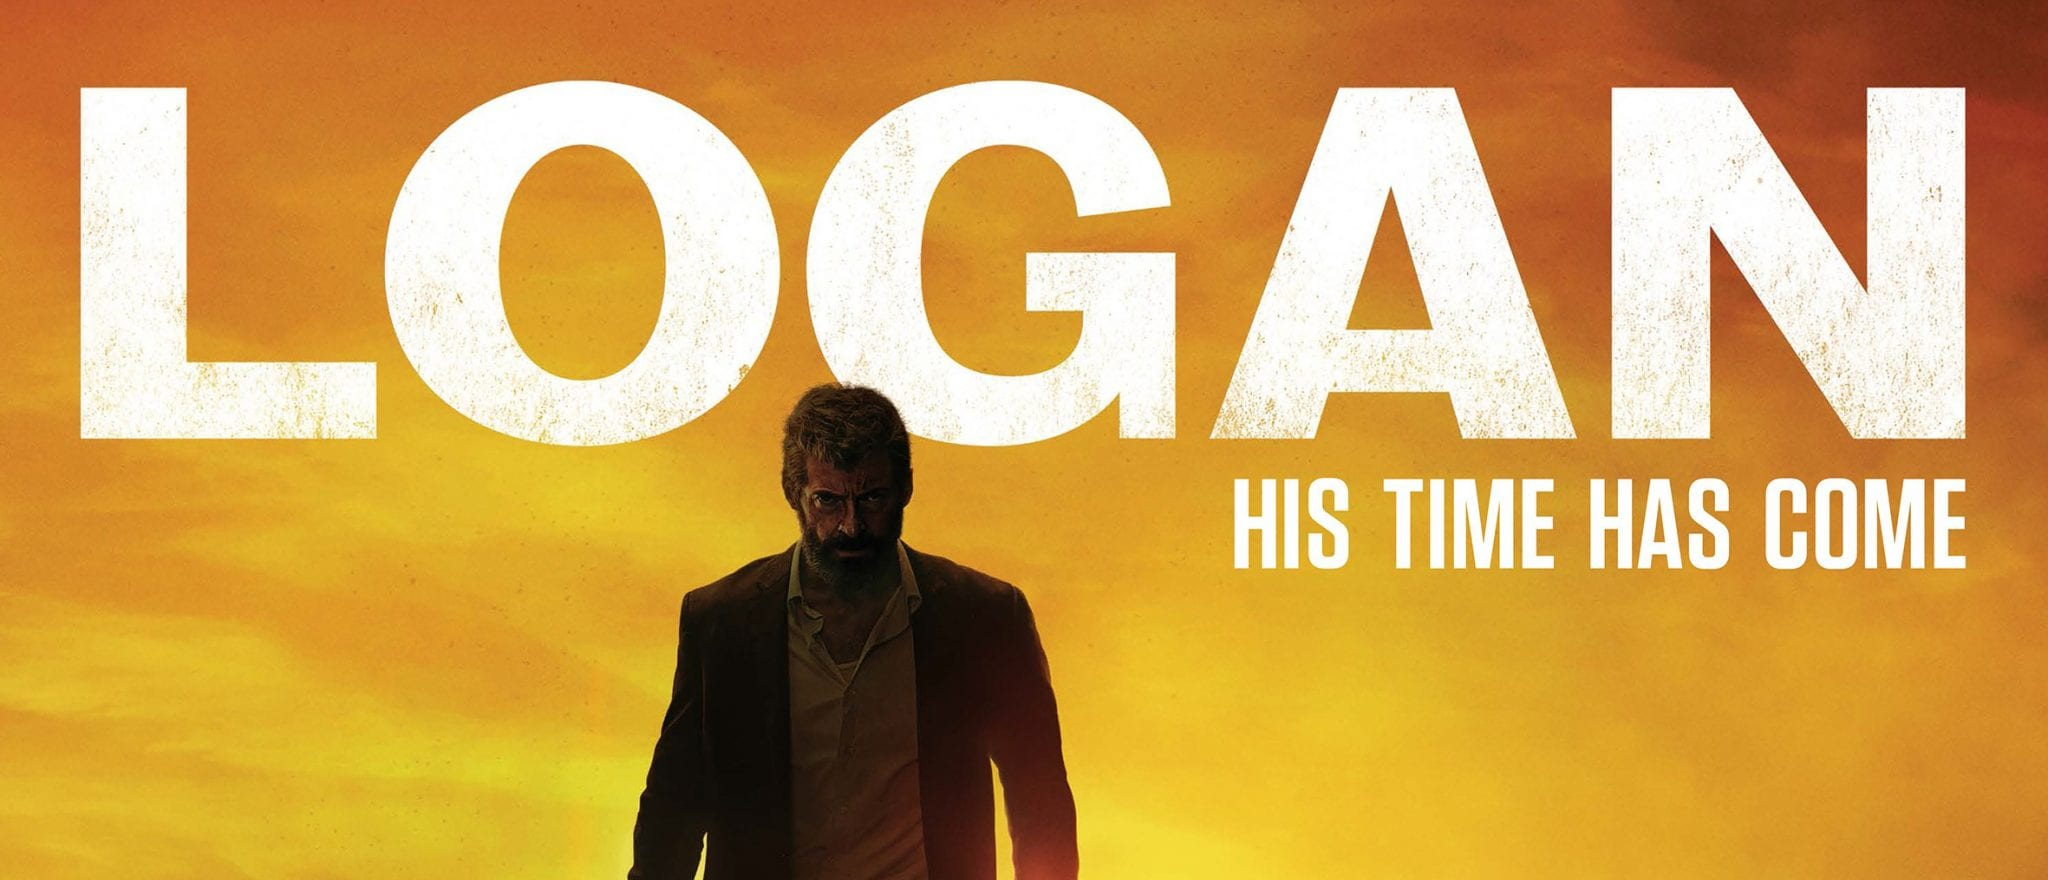 LOGAN is out! But Where Does it Fit On the Movie Timelines?